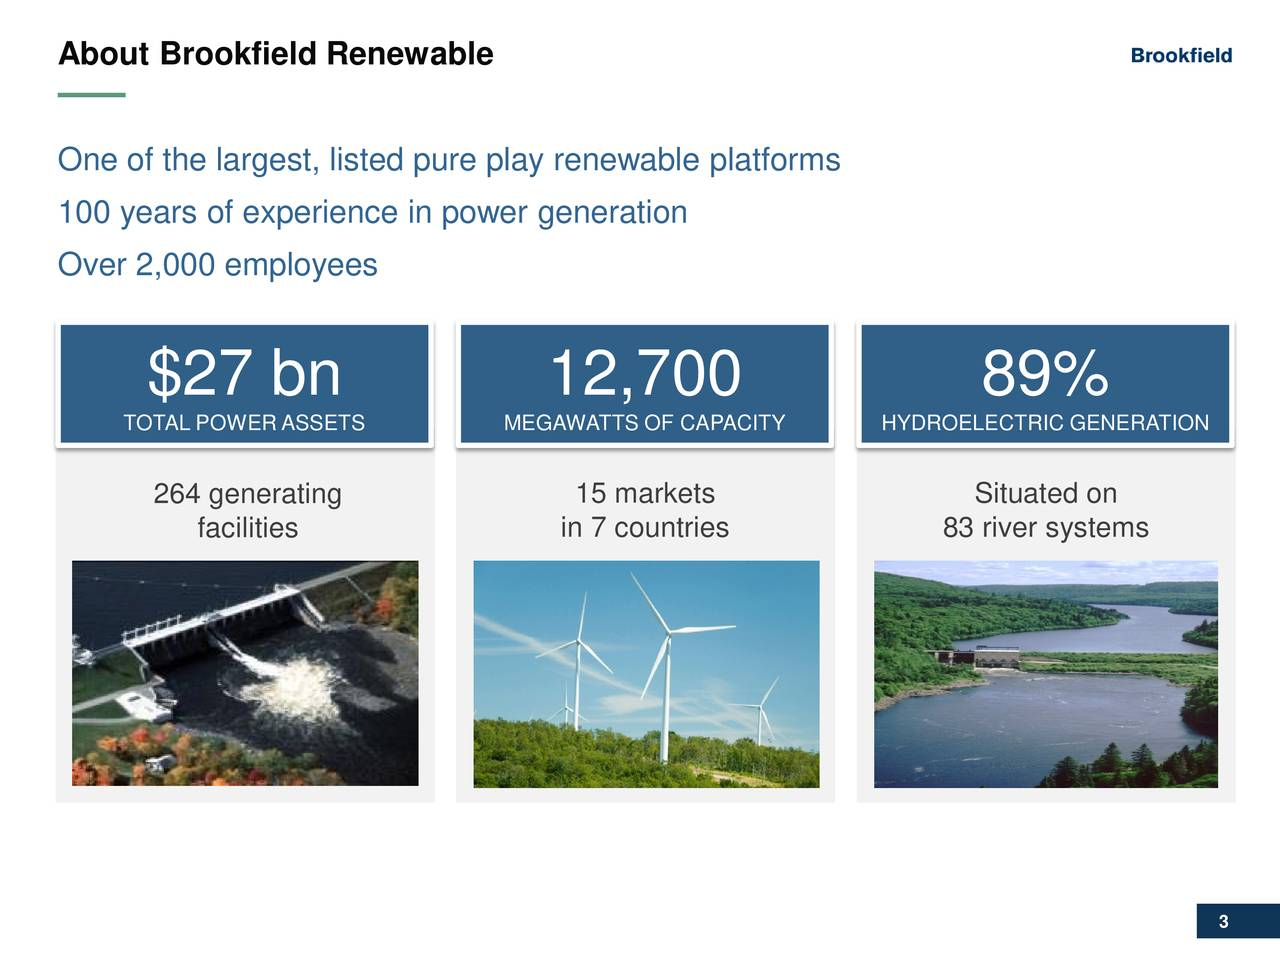 One of the largest, listed pure play renewable platforms 100 years of experience in power generation Over 2,000 employees $27 bn 12,700 89% TOTAL POWER ASSETS MEGAWATTS OF CAPACITY HYDROELECTRIC GENERATION 264 generating 15 markets YDROELECTRIC on facilities in 7 countries 83 river systems GENERATION 3